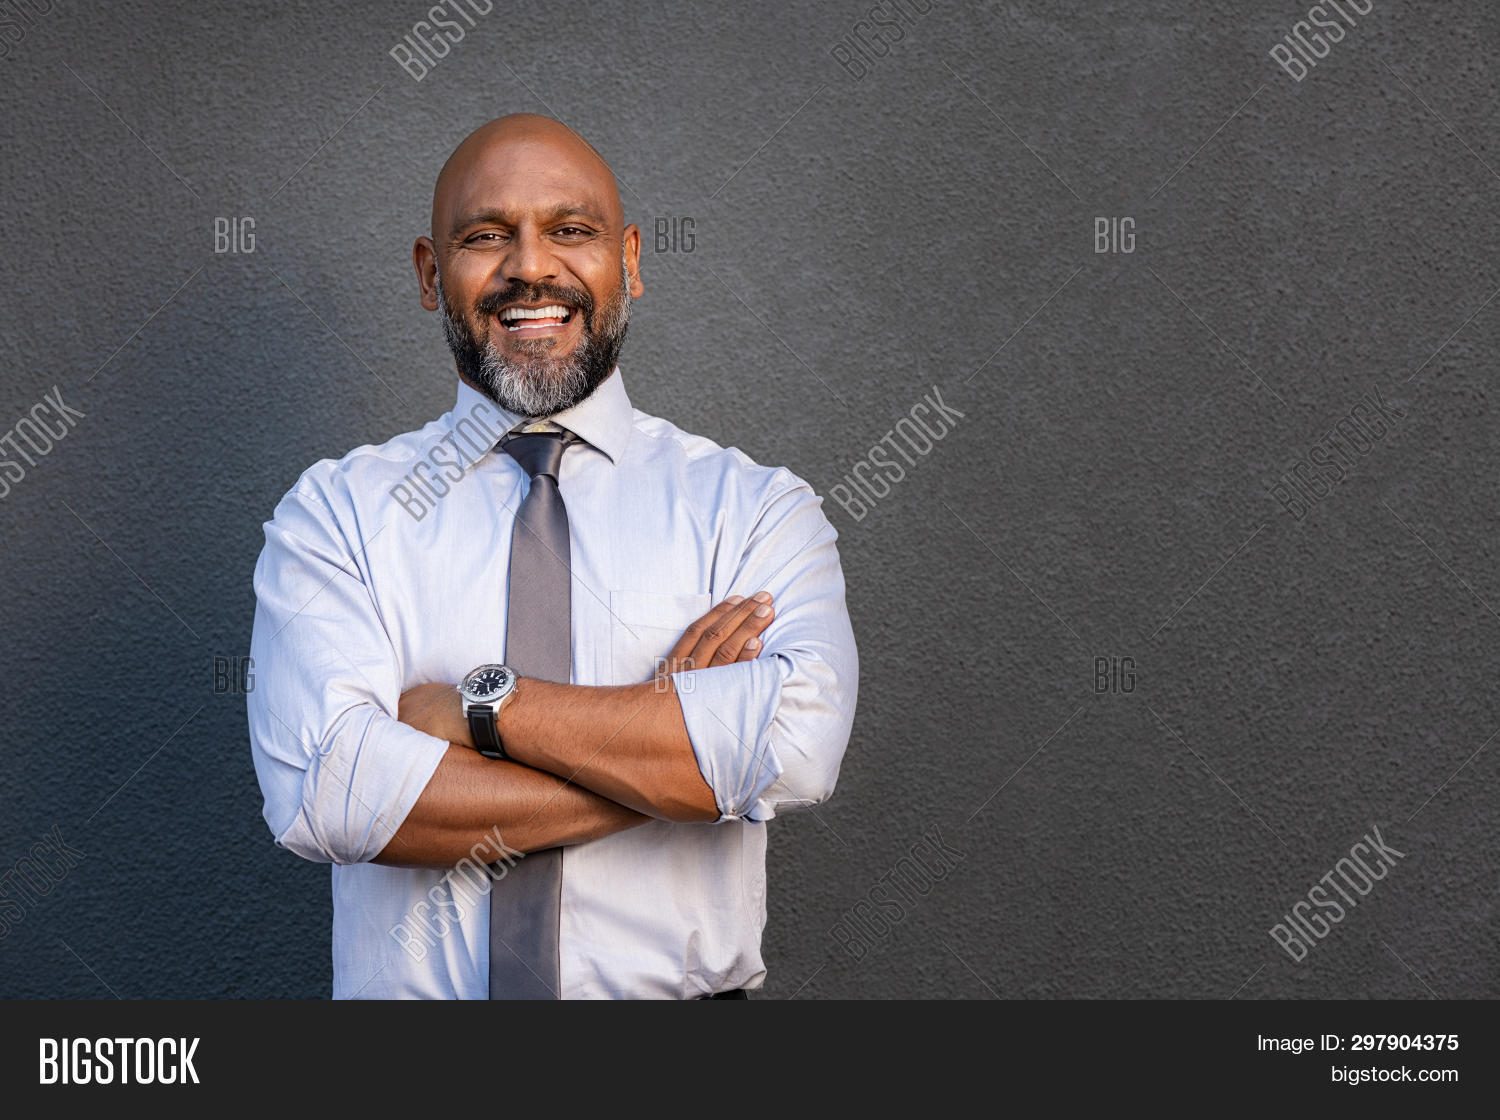 Successful senior man with folded arms standing over grey background. Mature black businessman in sh